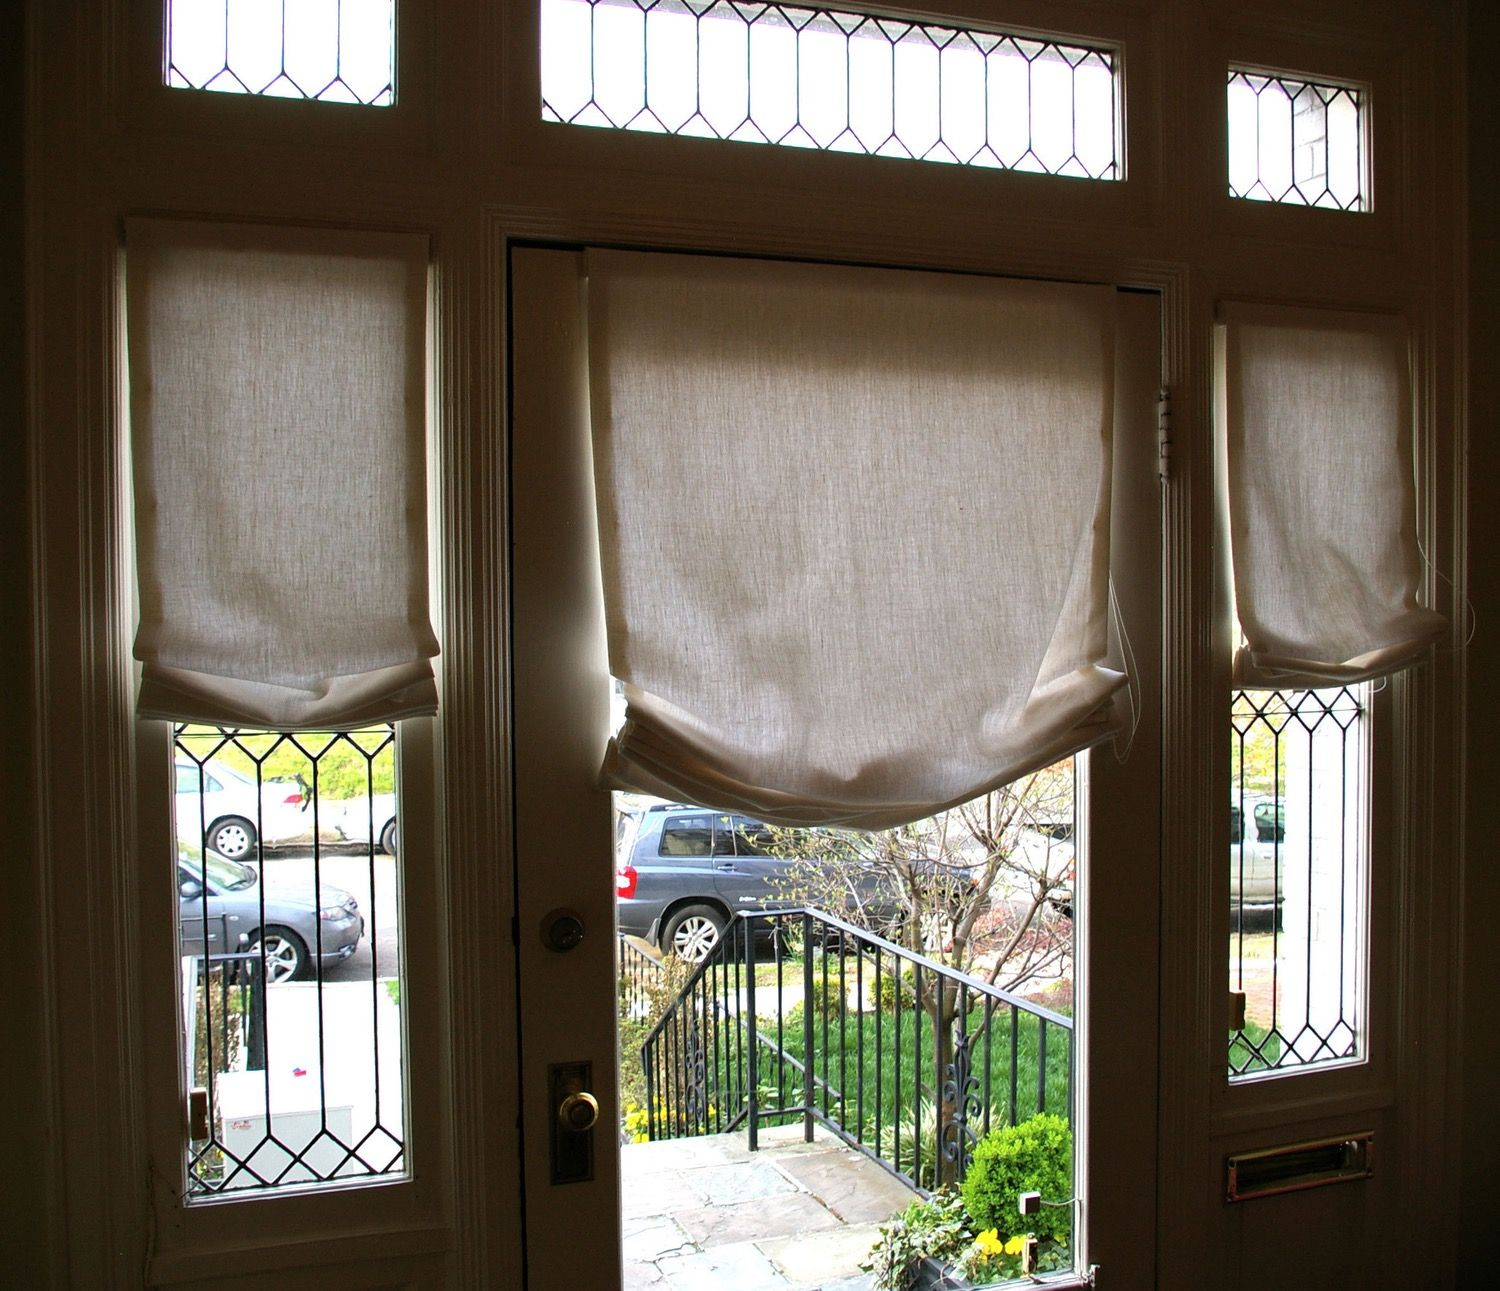 Curtains Drapes And Blinds For A Glass Front Door Front Doors With Windows Drapes Blinds Door Coverings